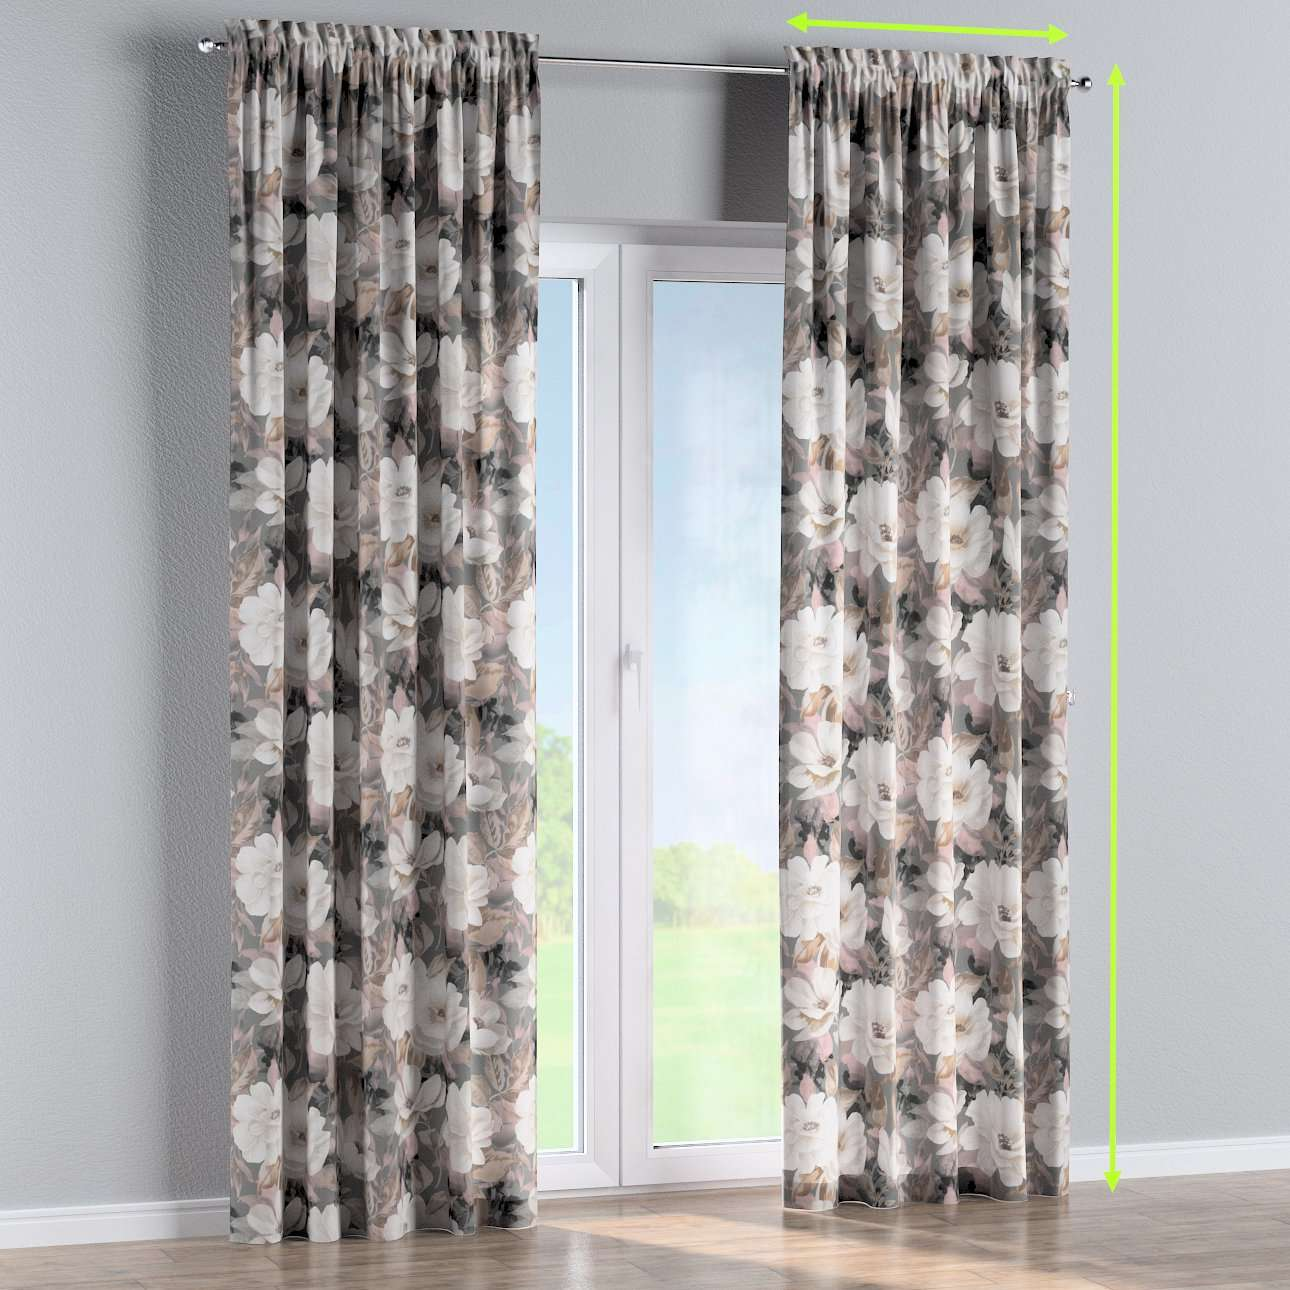 Slot and frill lined curtains in collection Gardenia, fabric: 142-13